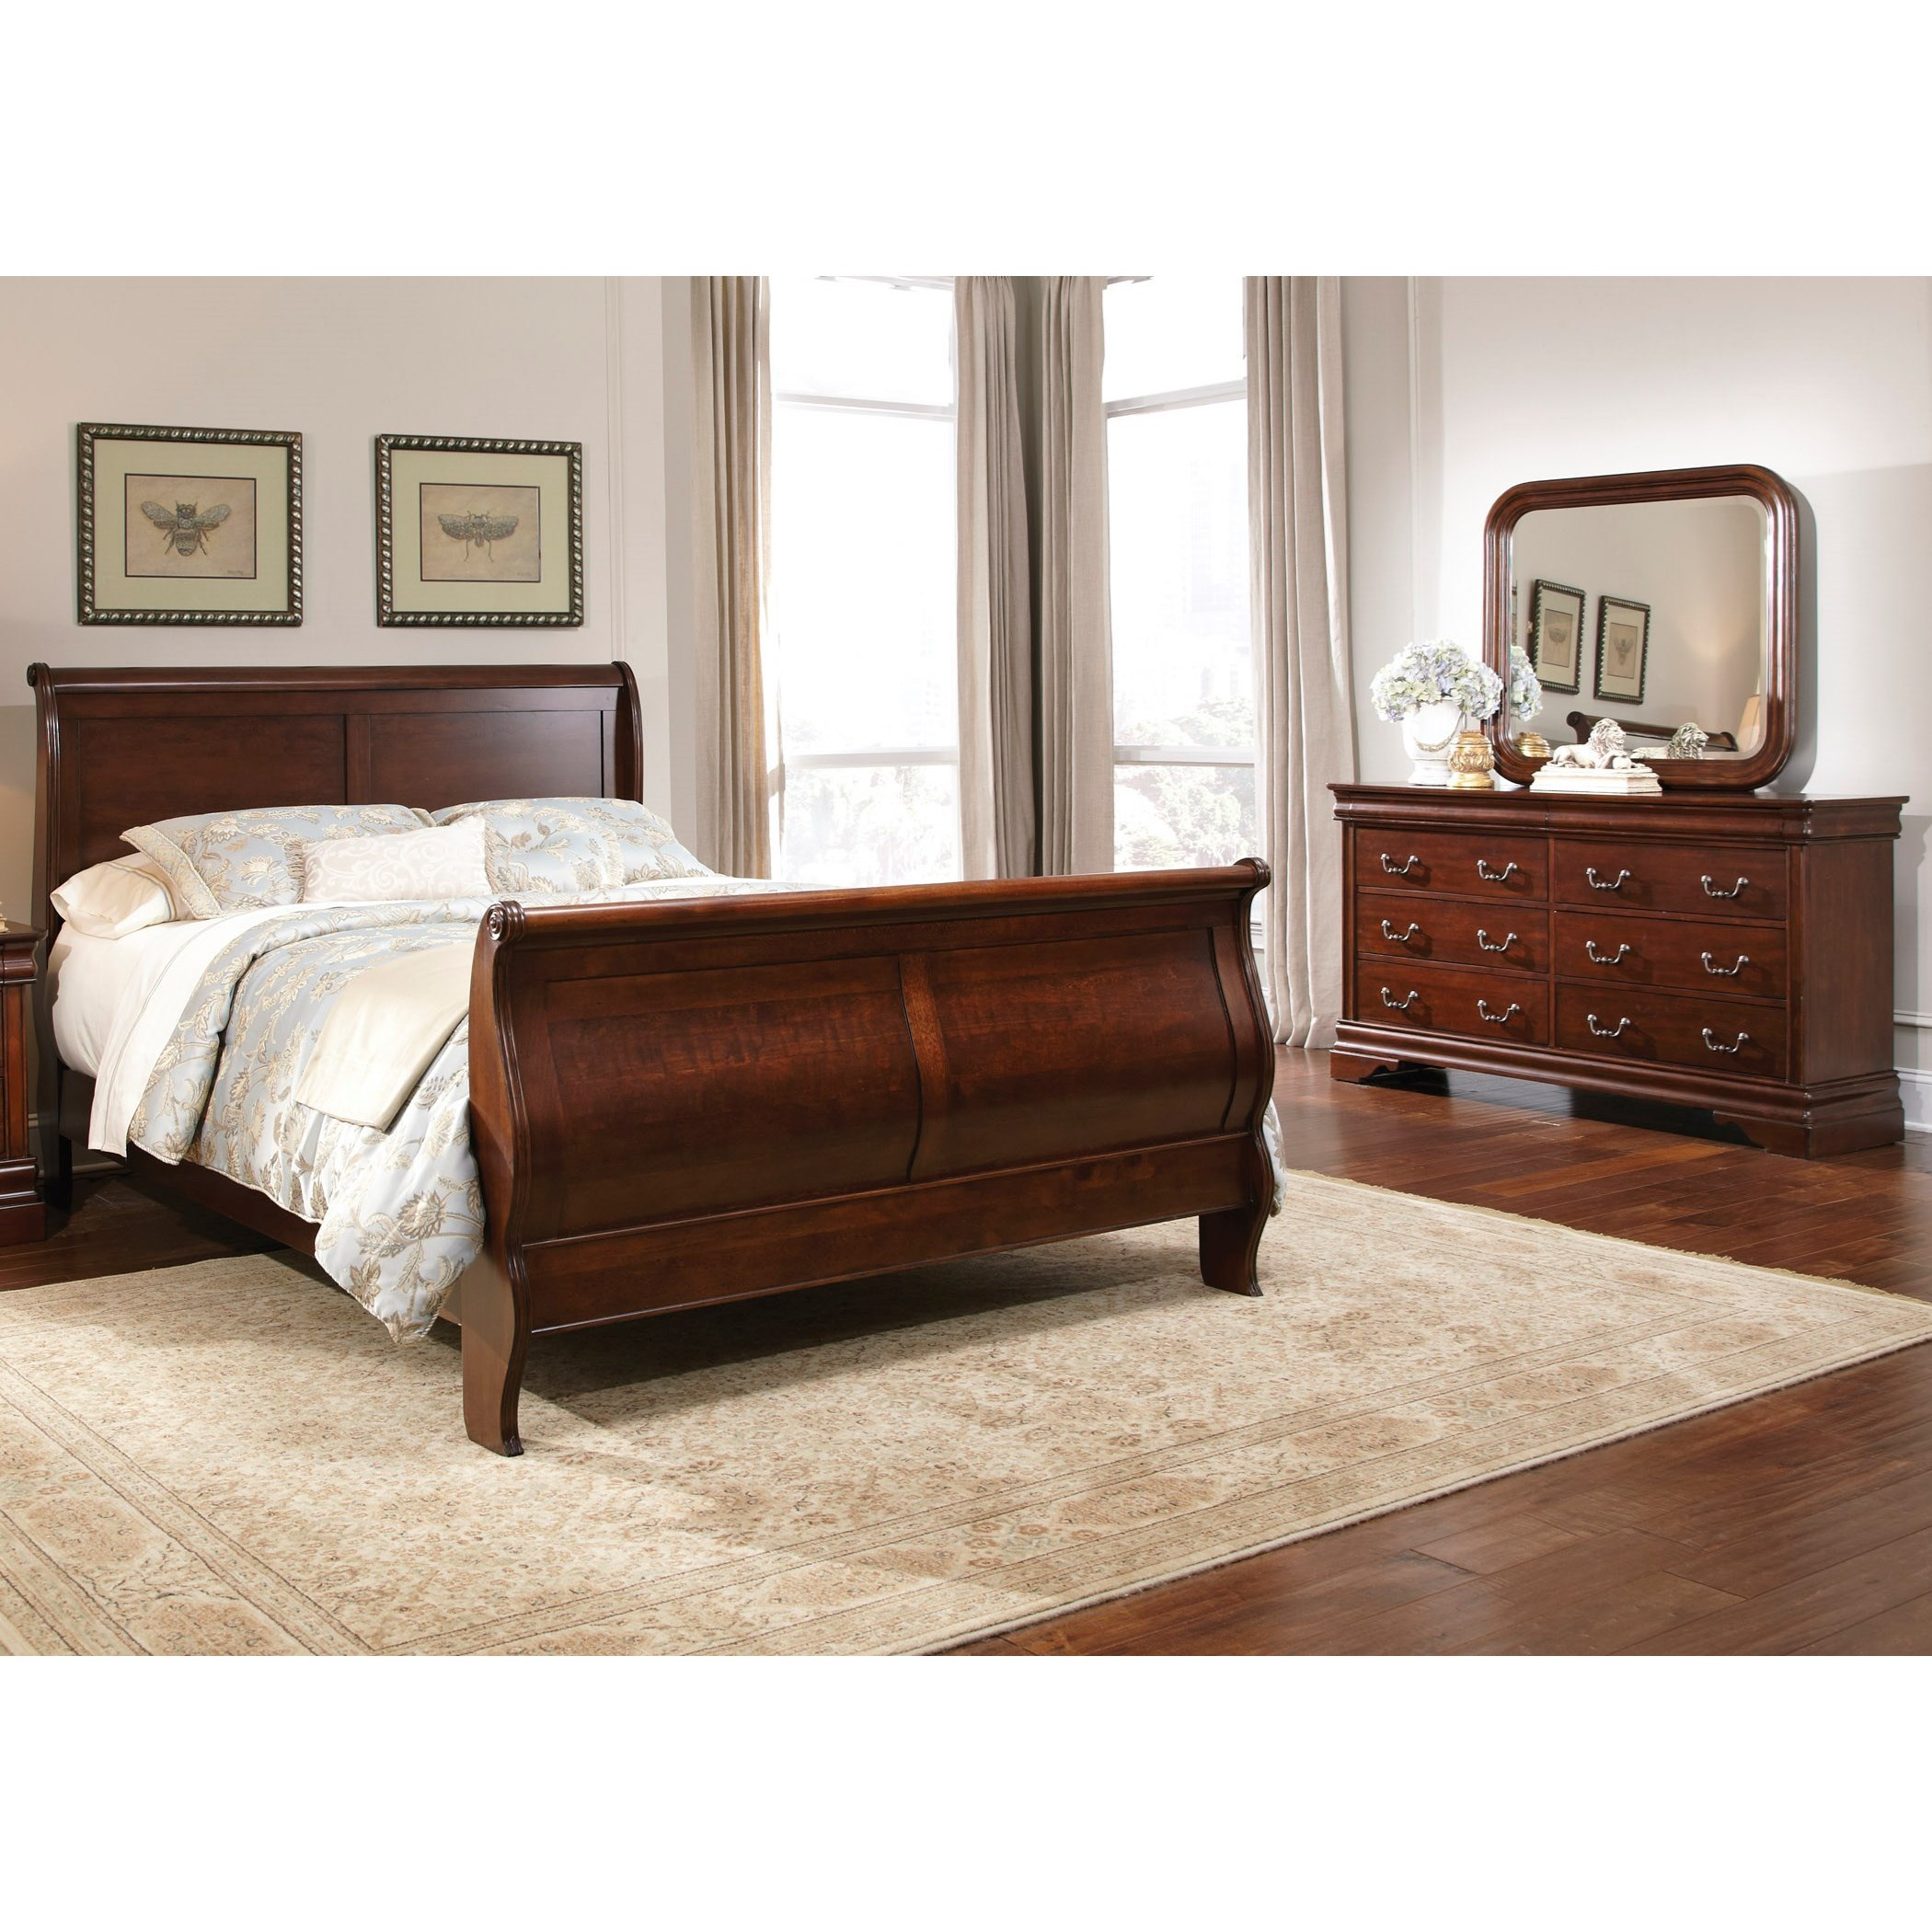 Carriage Court King Sleigh Bedroom Group by Liberty Furniture at Northeast Factory Direct